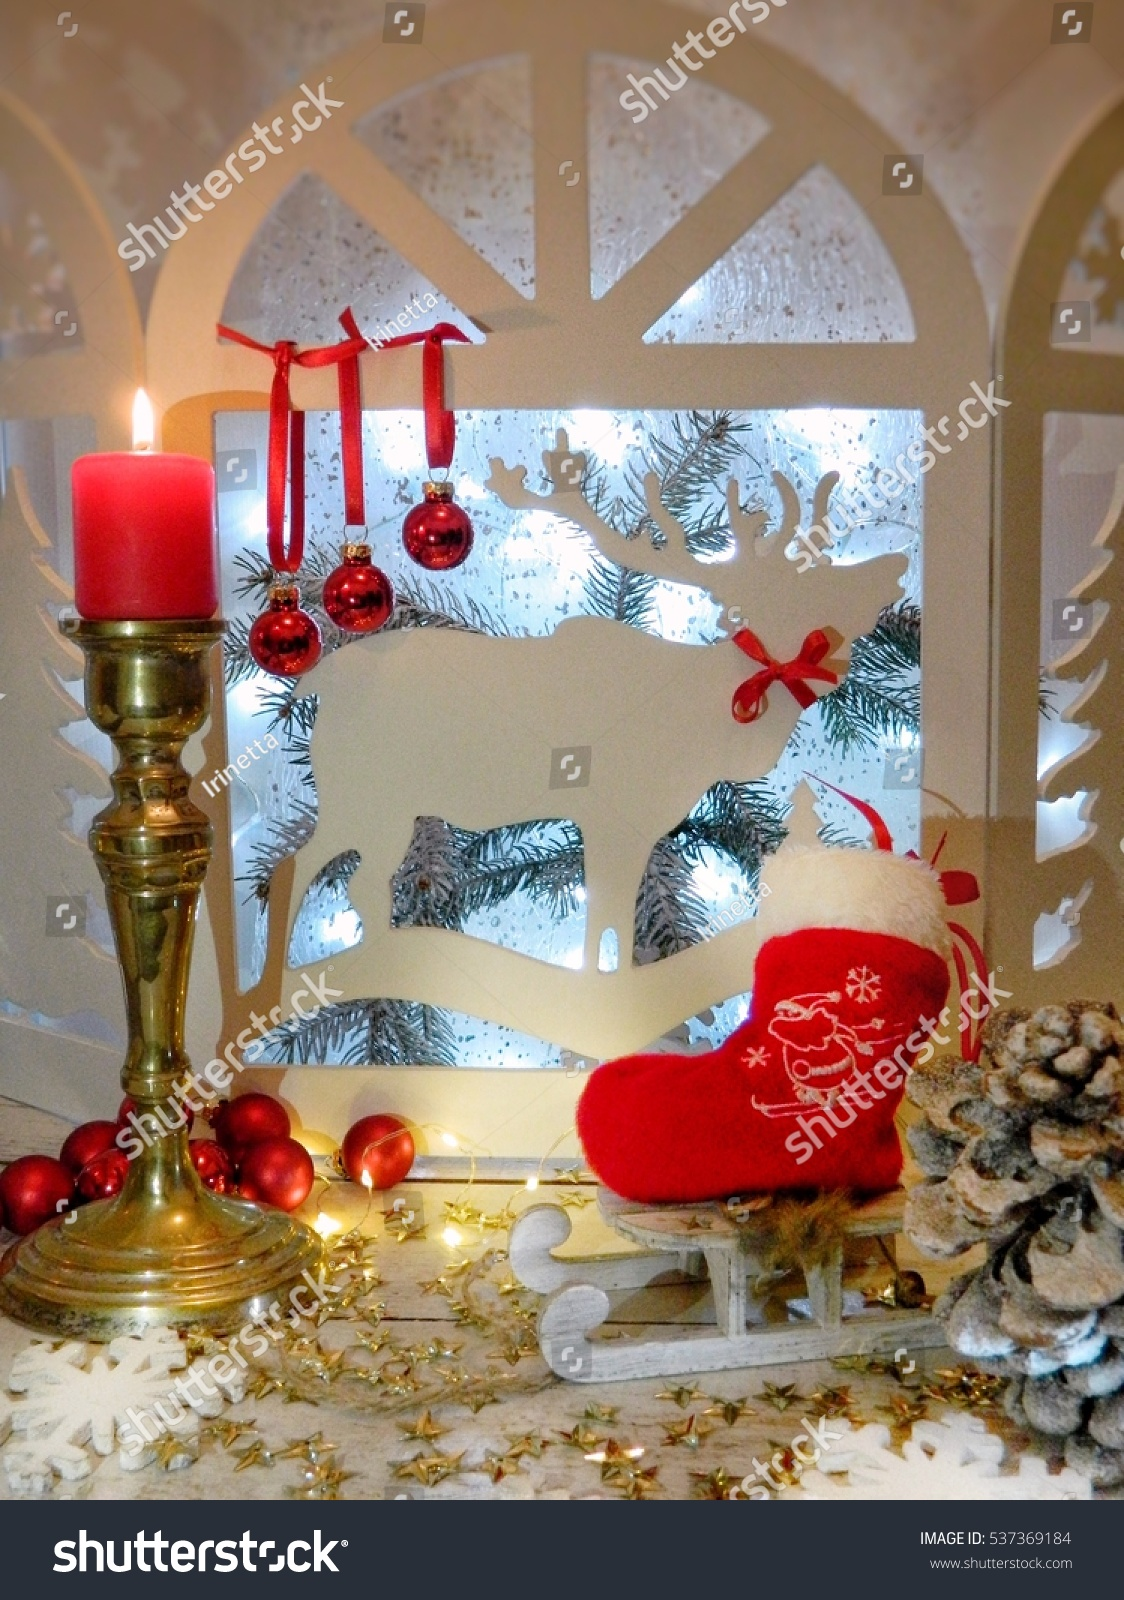 Christmas Decor House Window H Reindeer Stock Photo (Edit Now ...